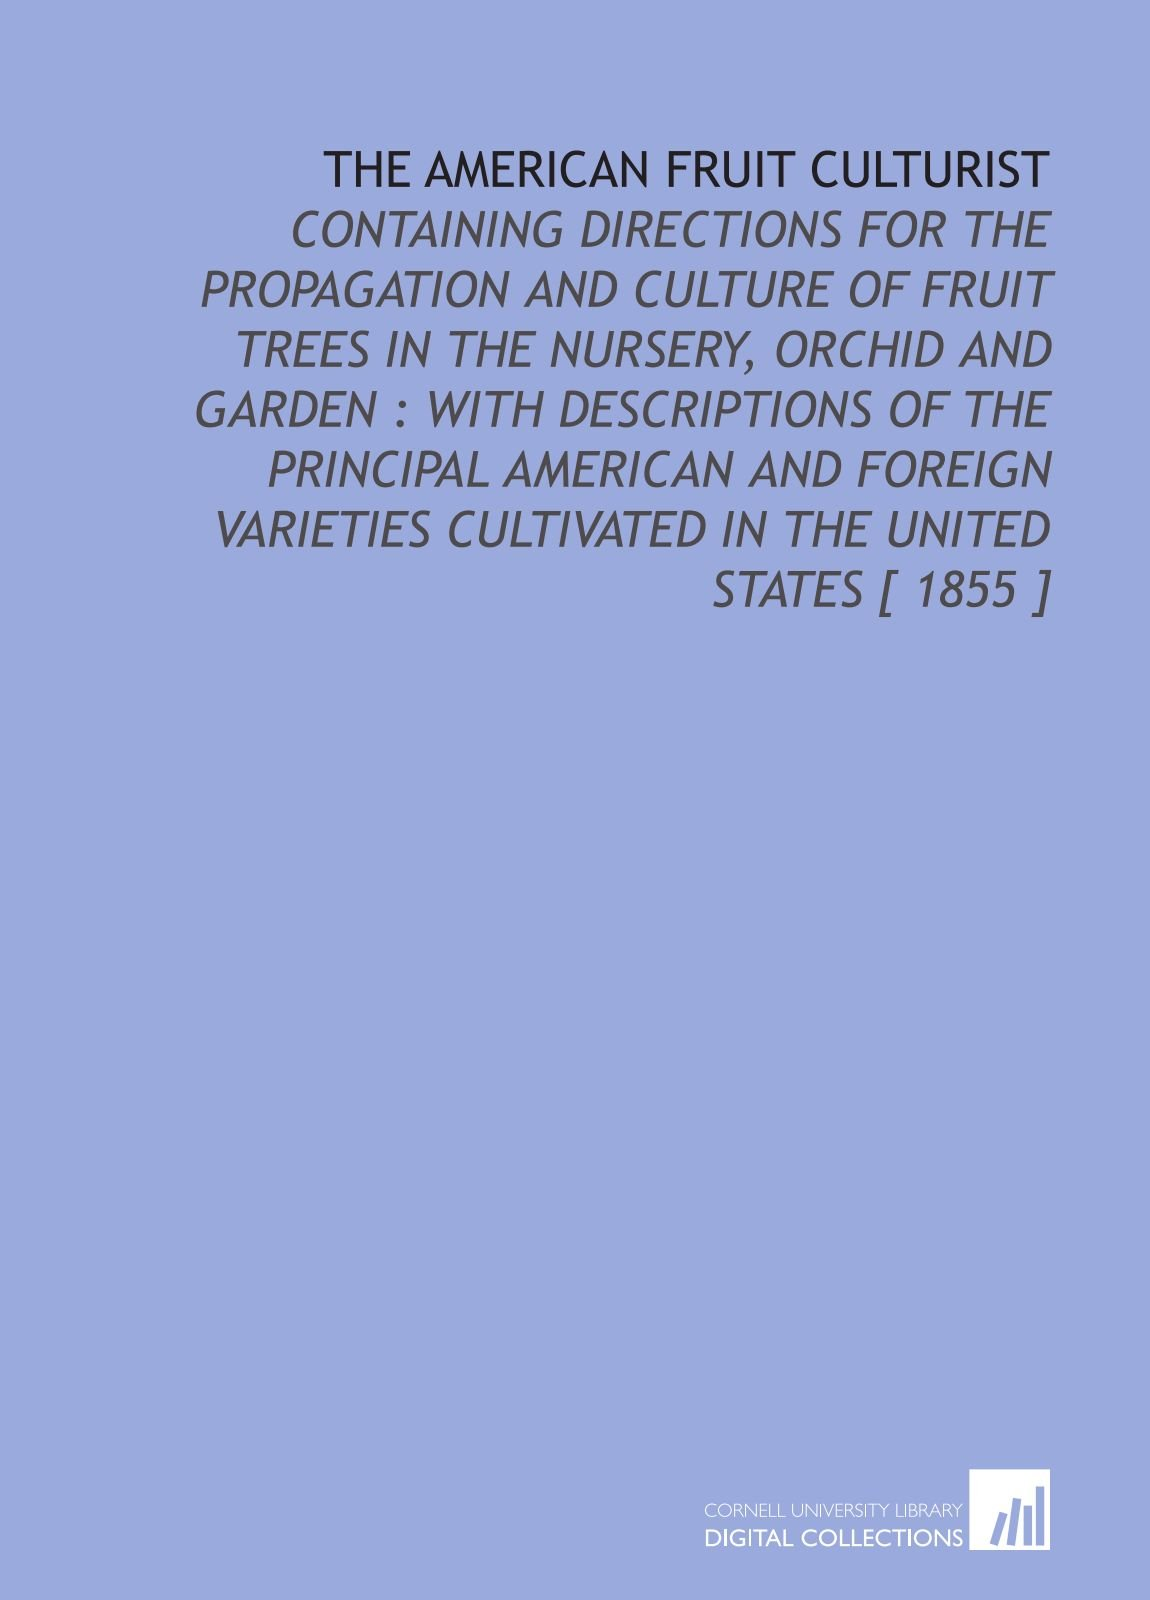 The American Fruit Culturist: Containing Directions for the Propagation and Culture of Fruit Trees in the Nursery, Orchid and Garden : With ... Cultivated in the United States [ 1855 ] pdf epub